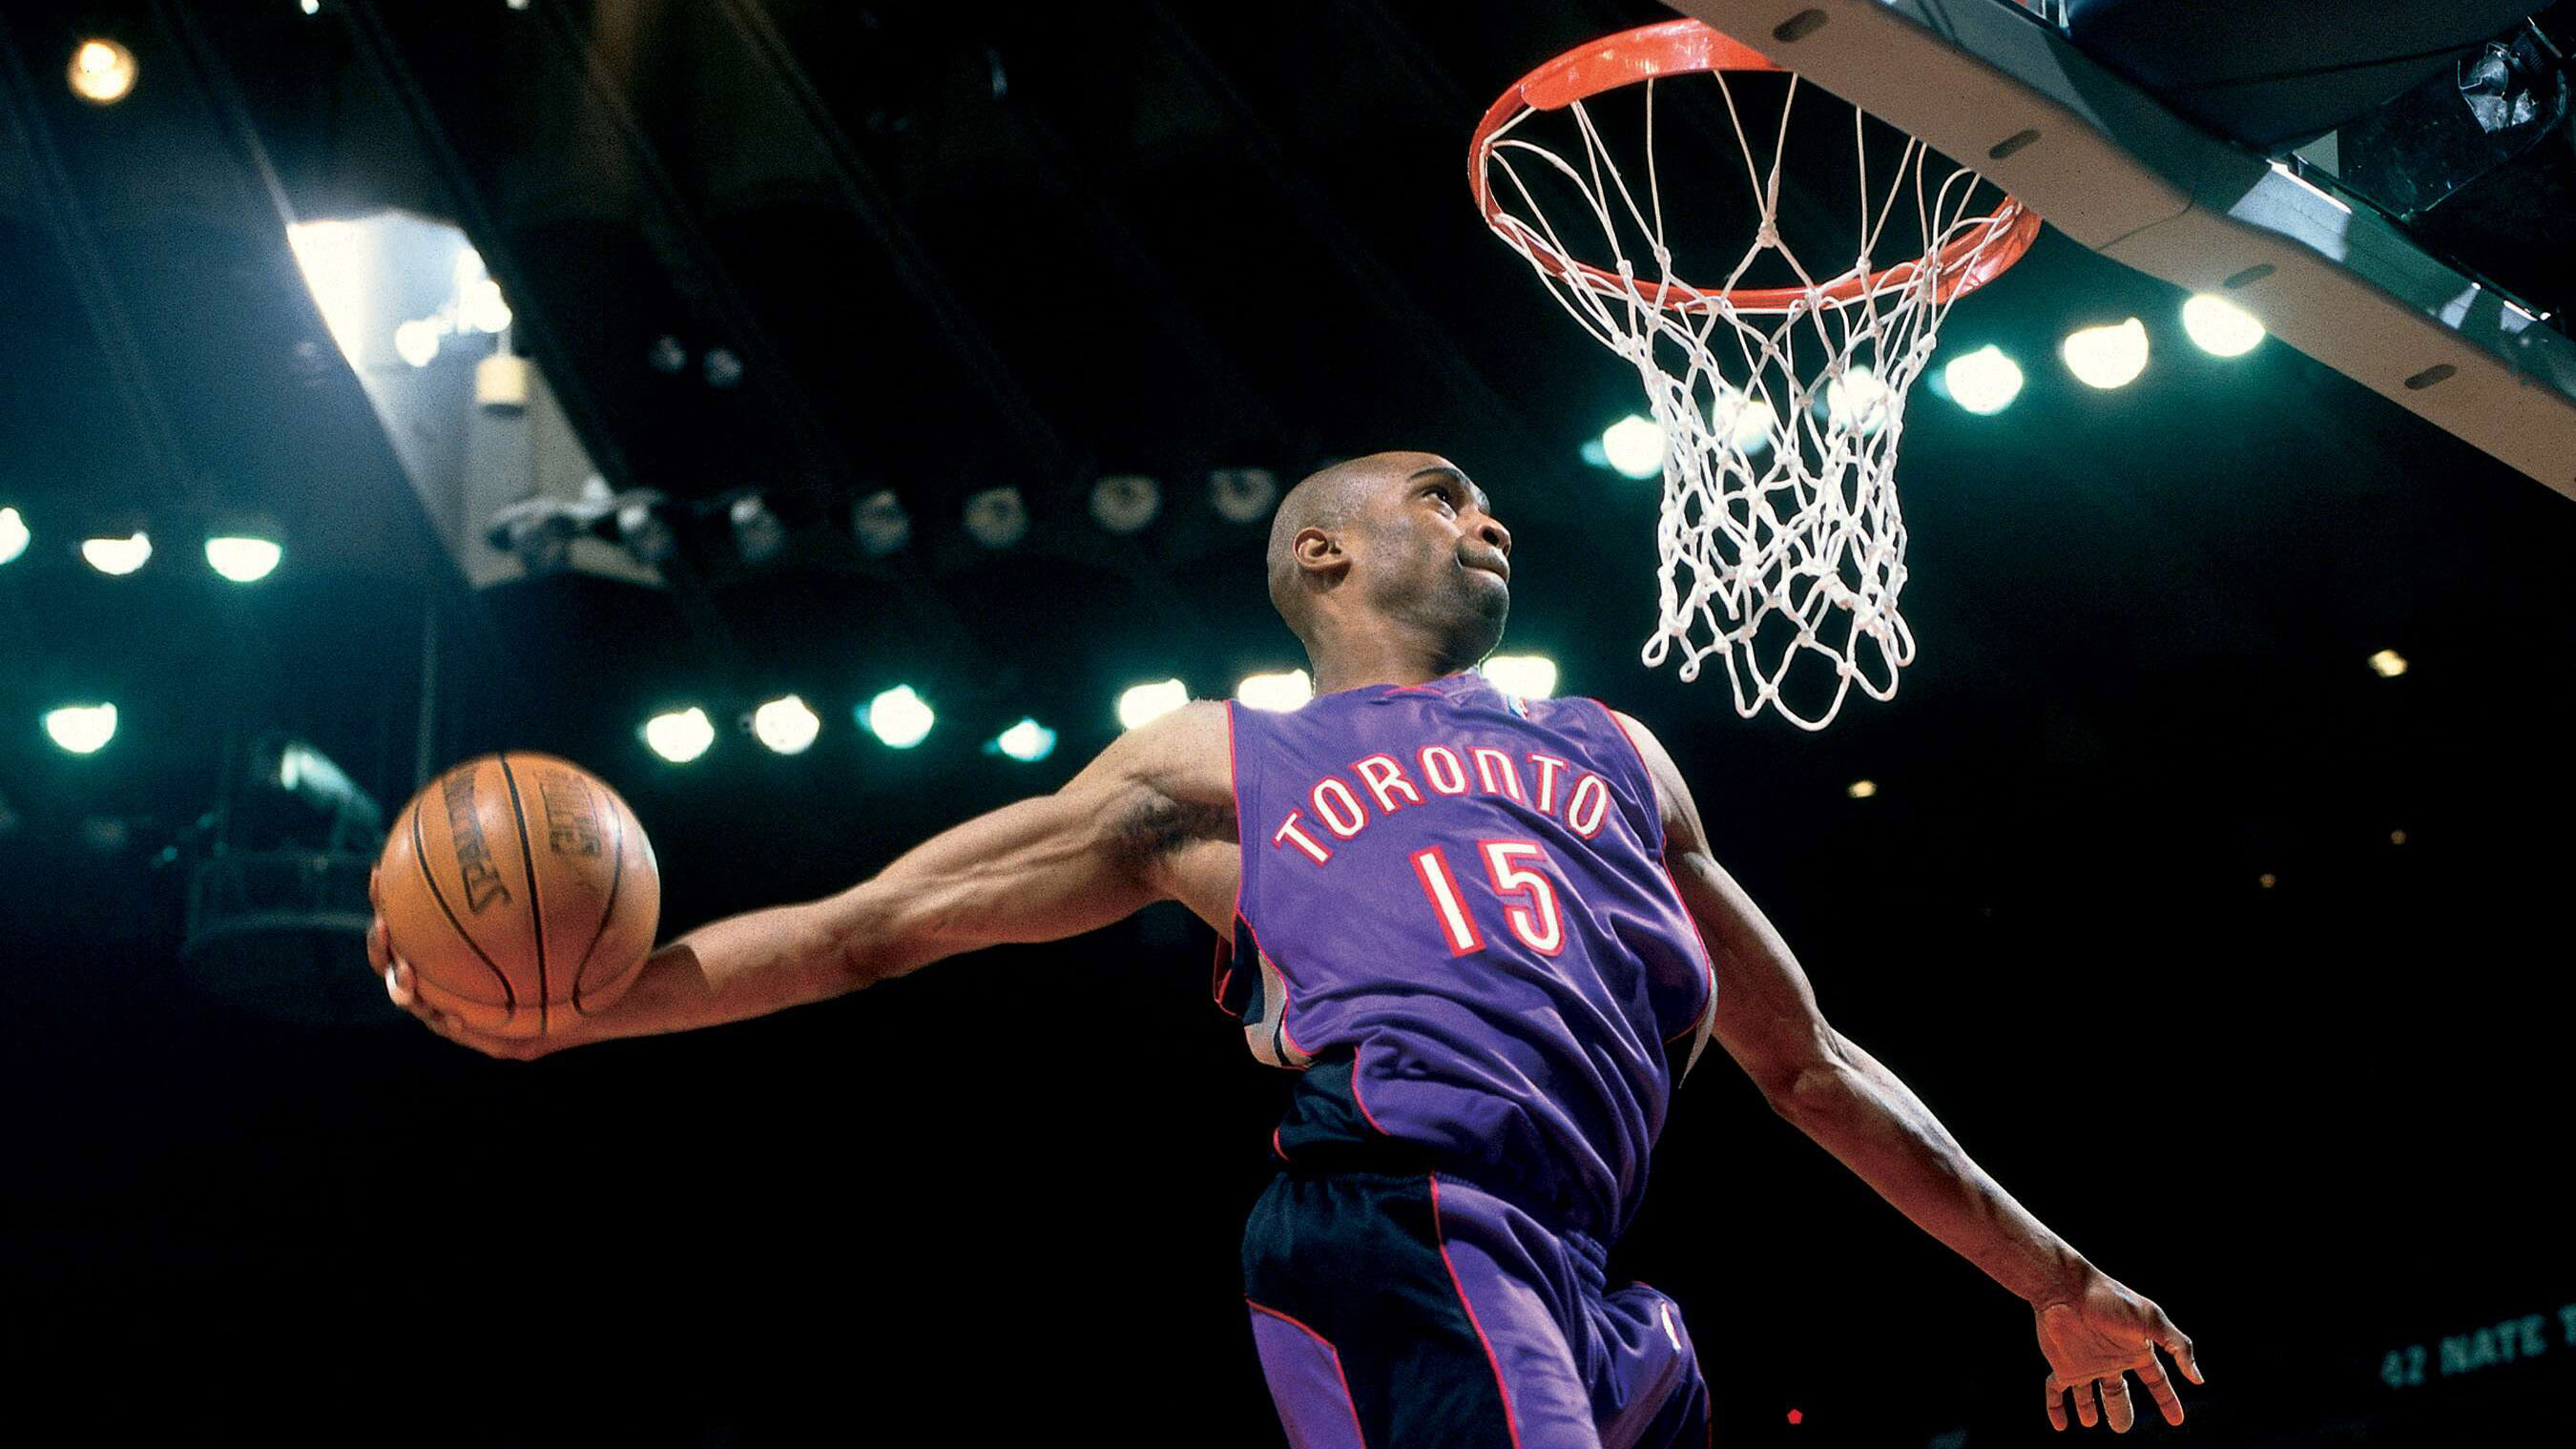 Best of Vince Carter, Tracey McGrady in NBA Slam Dunk Contest